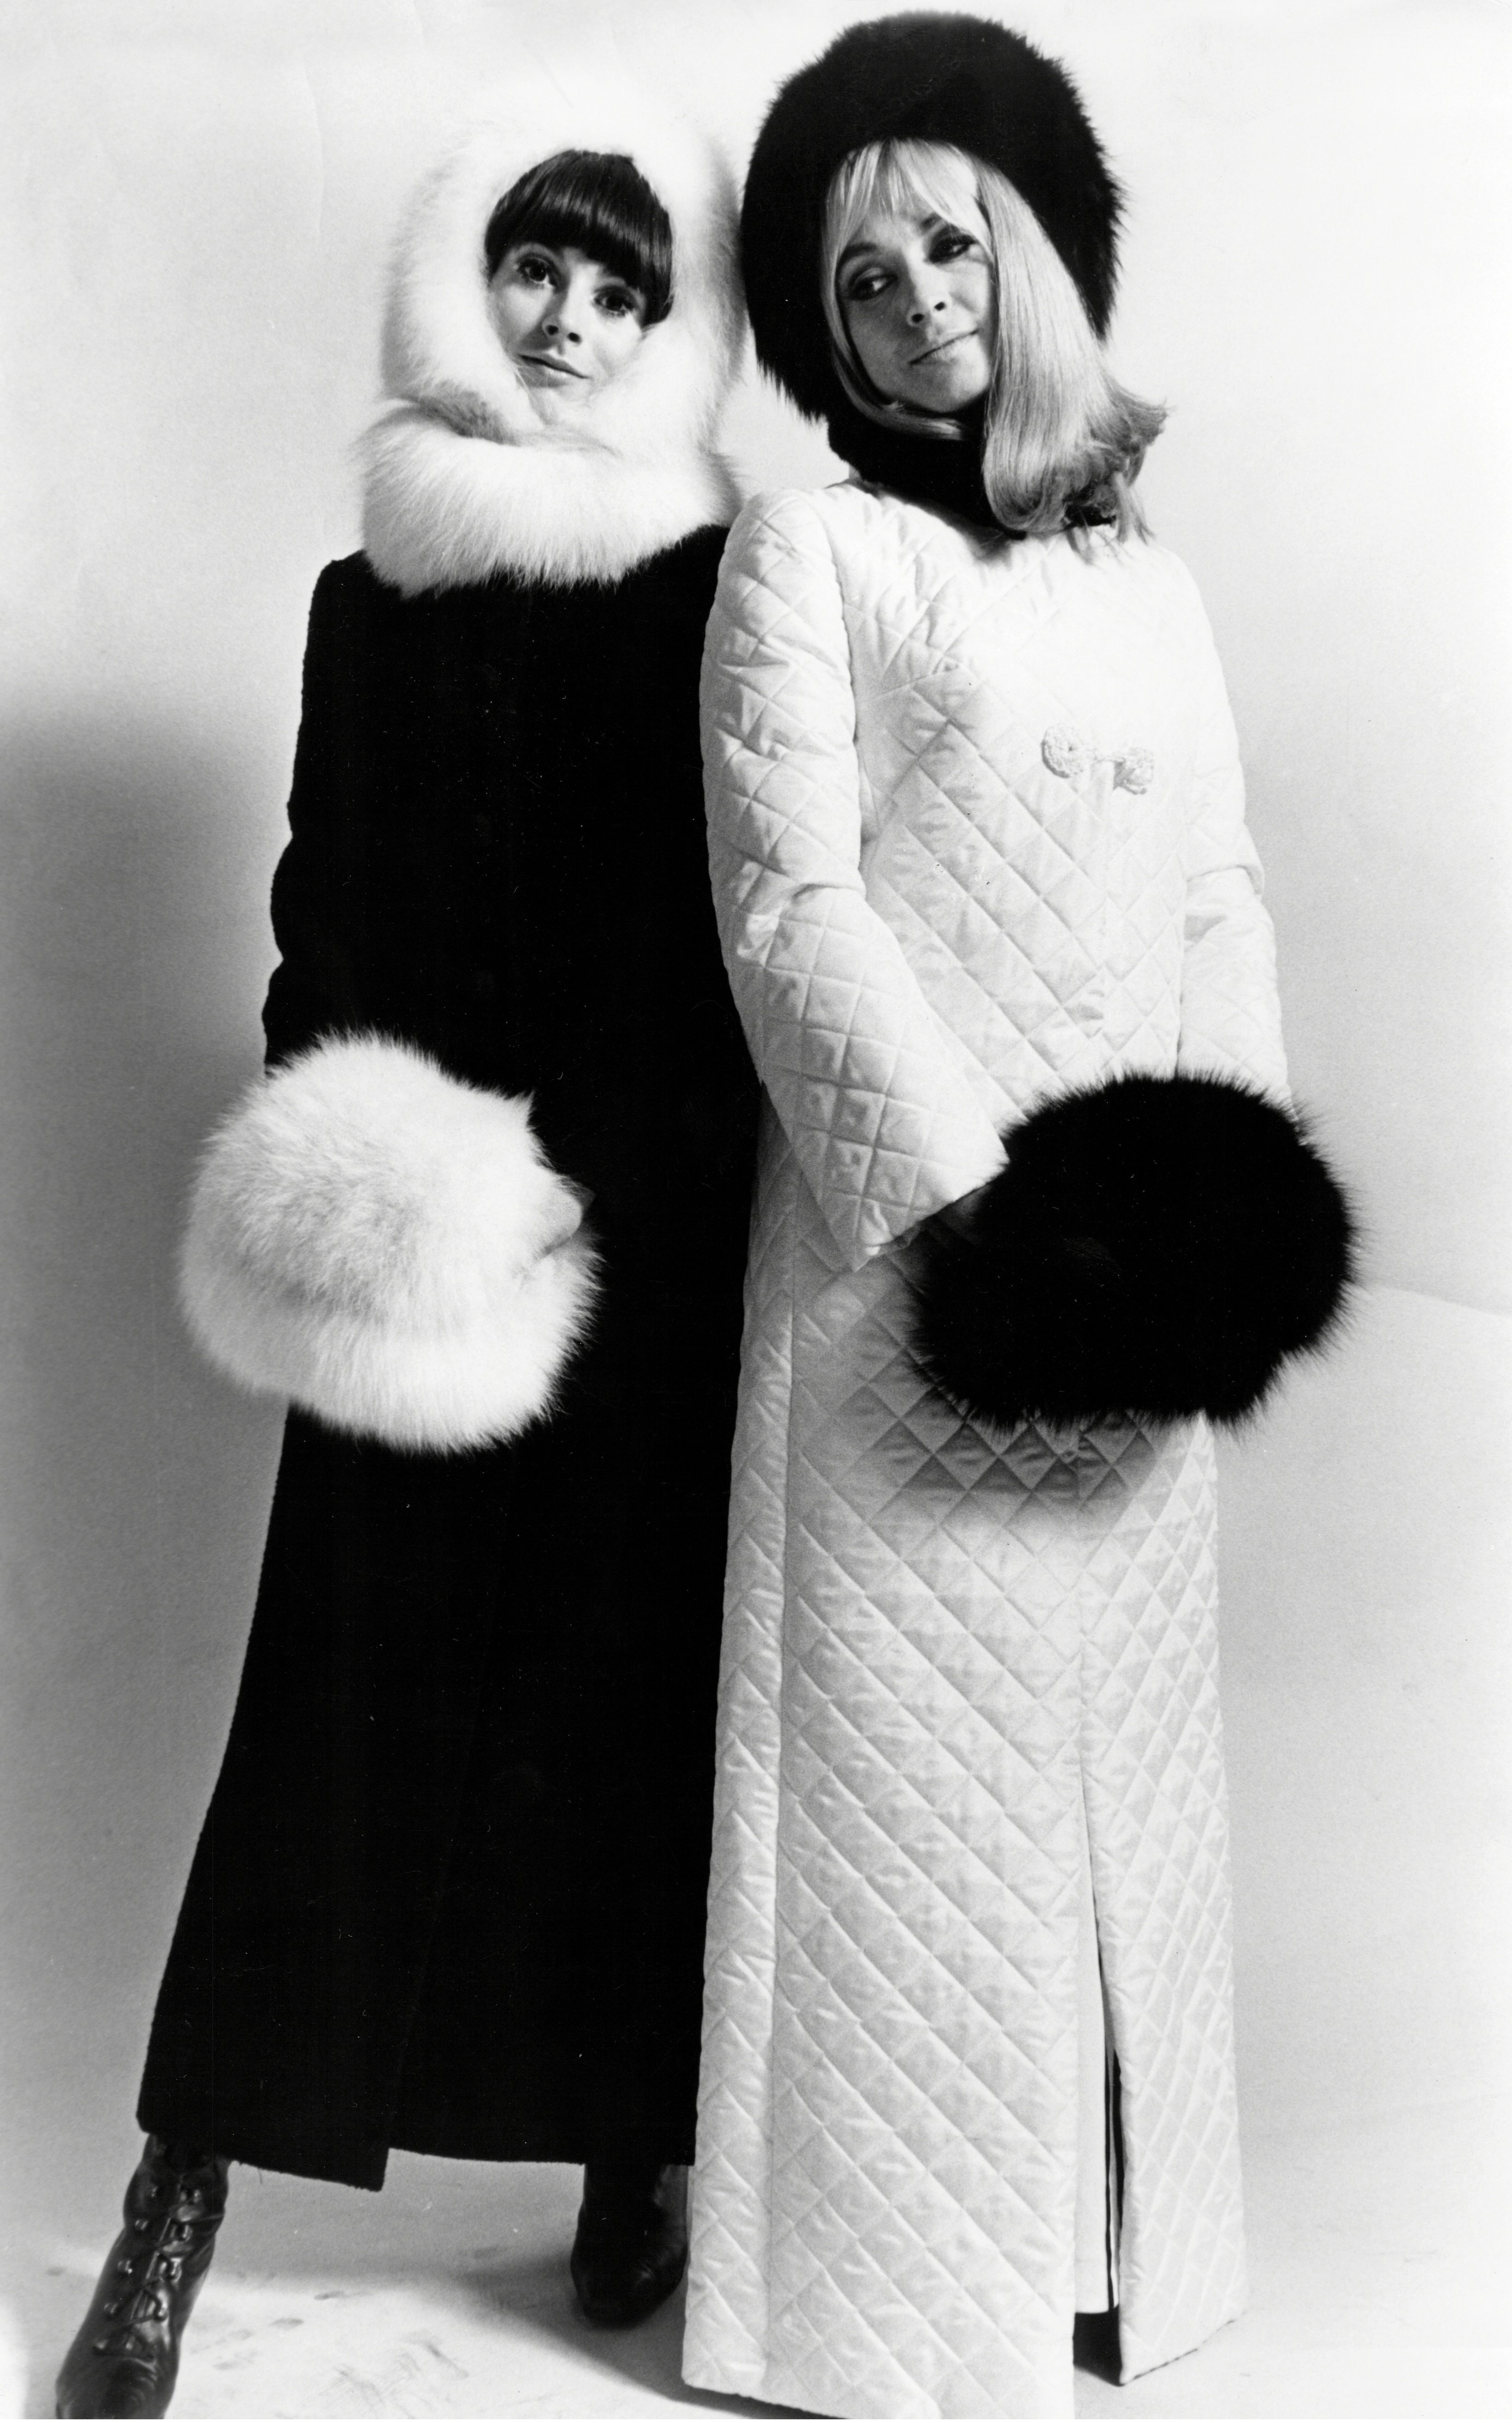 The Zhivago Look. Long Black Wool Coat 22 Gns. At Jaeger. White Fox Hood 18gns. White Fox Collar 14gns. White Fox Muff 18gns. All At Femina Furs. The Zhivago Look In A Long White Quilted Coat With Hussar-type Fastening A16.15.6. Black Musquash Collar